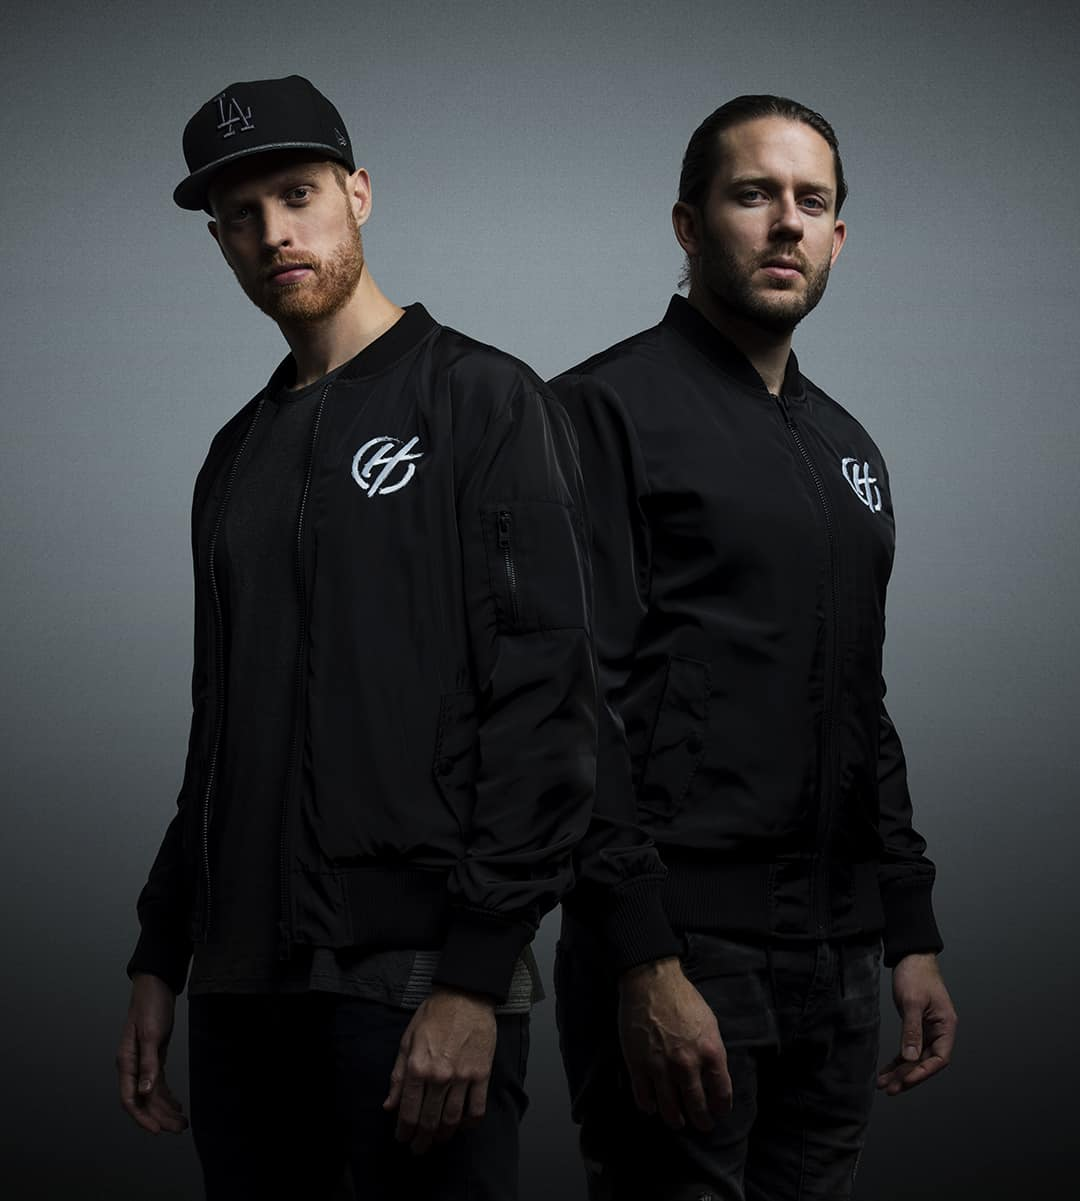 The Him reveal about 'Broken Love' feat. Parson James on Spinnin' Records